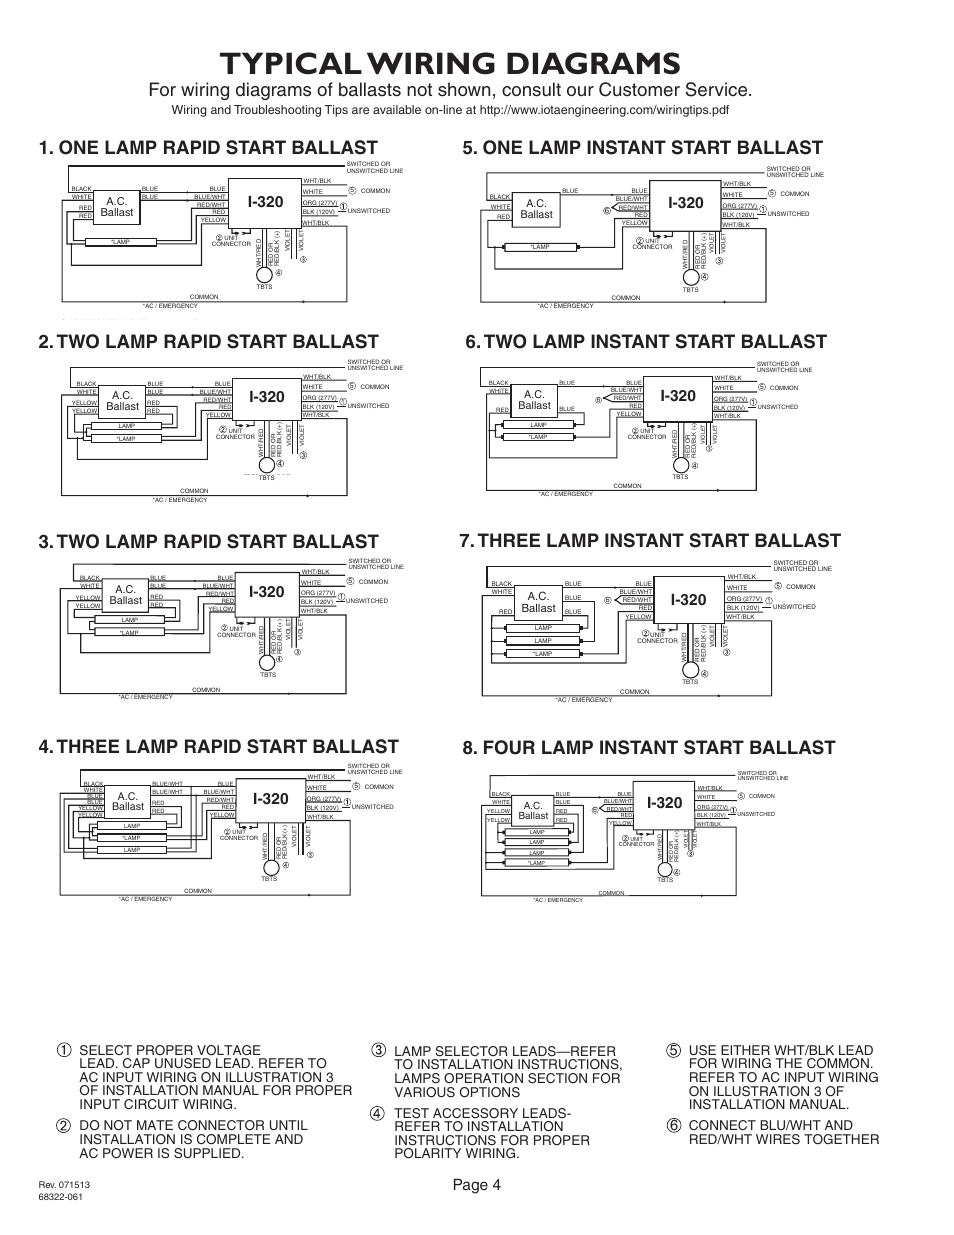 iota i 320 page4 typical wiring diagrams, page 4, i 320 iota i 320 user manual rapid start ballast wiring diagram at eliteediting.co